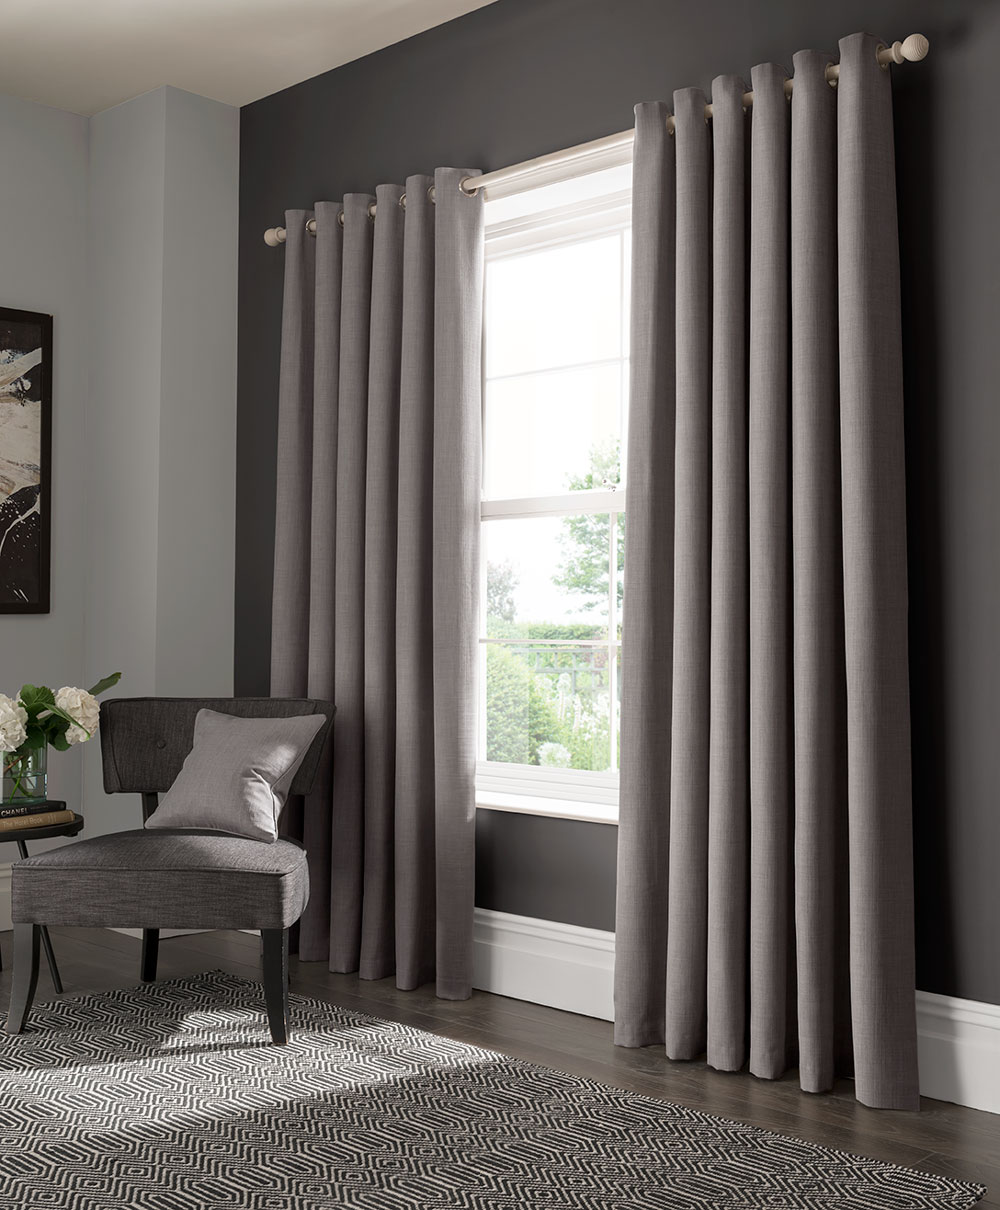 Elba Eyelet Curtains Ready Made Curtains - Grey - by Studio G